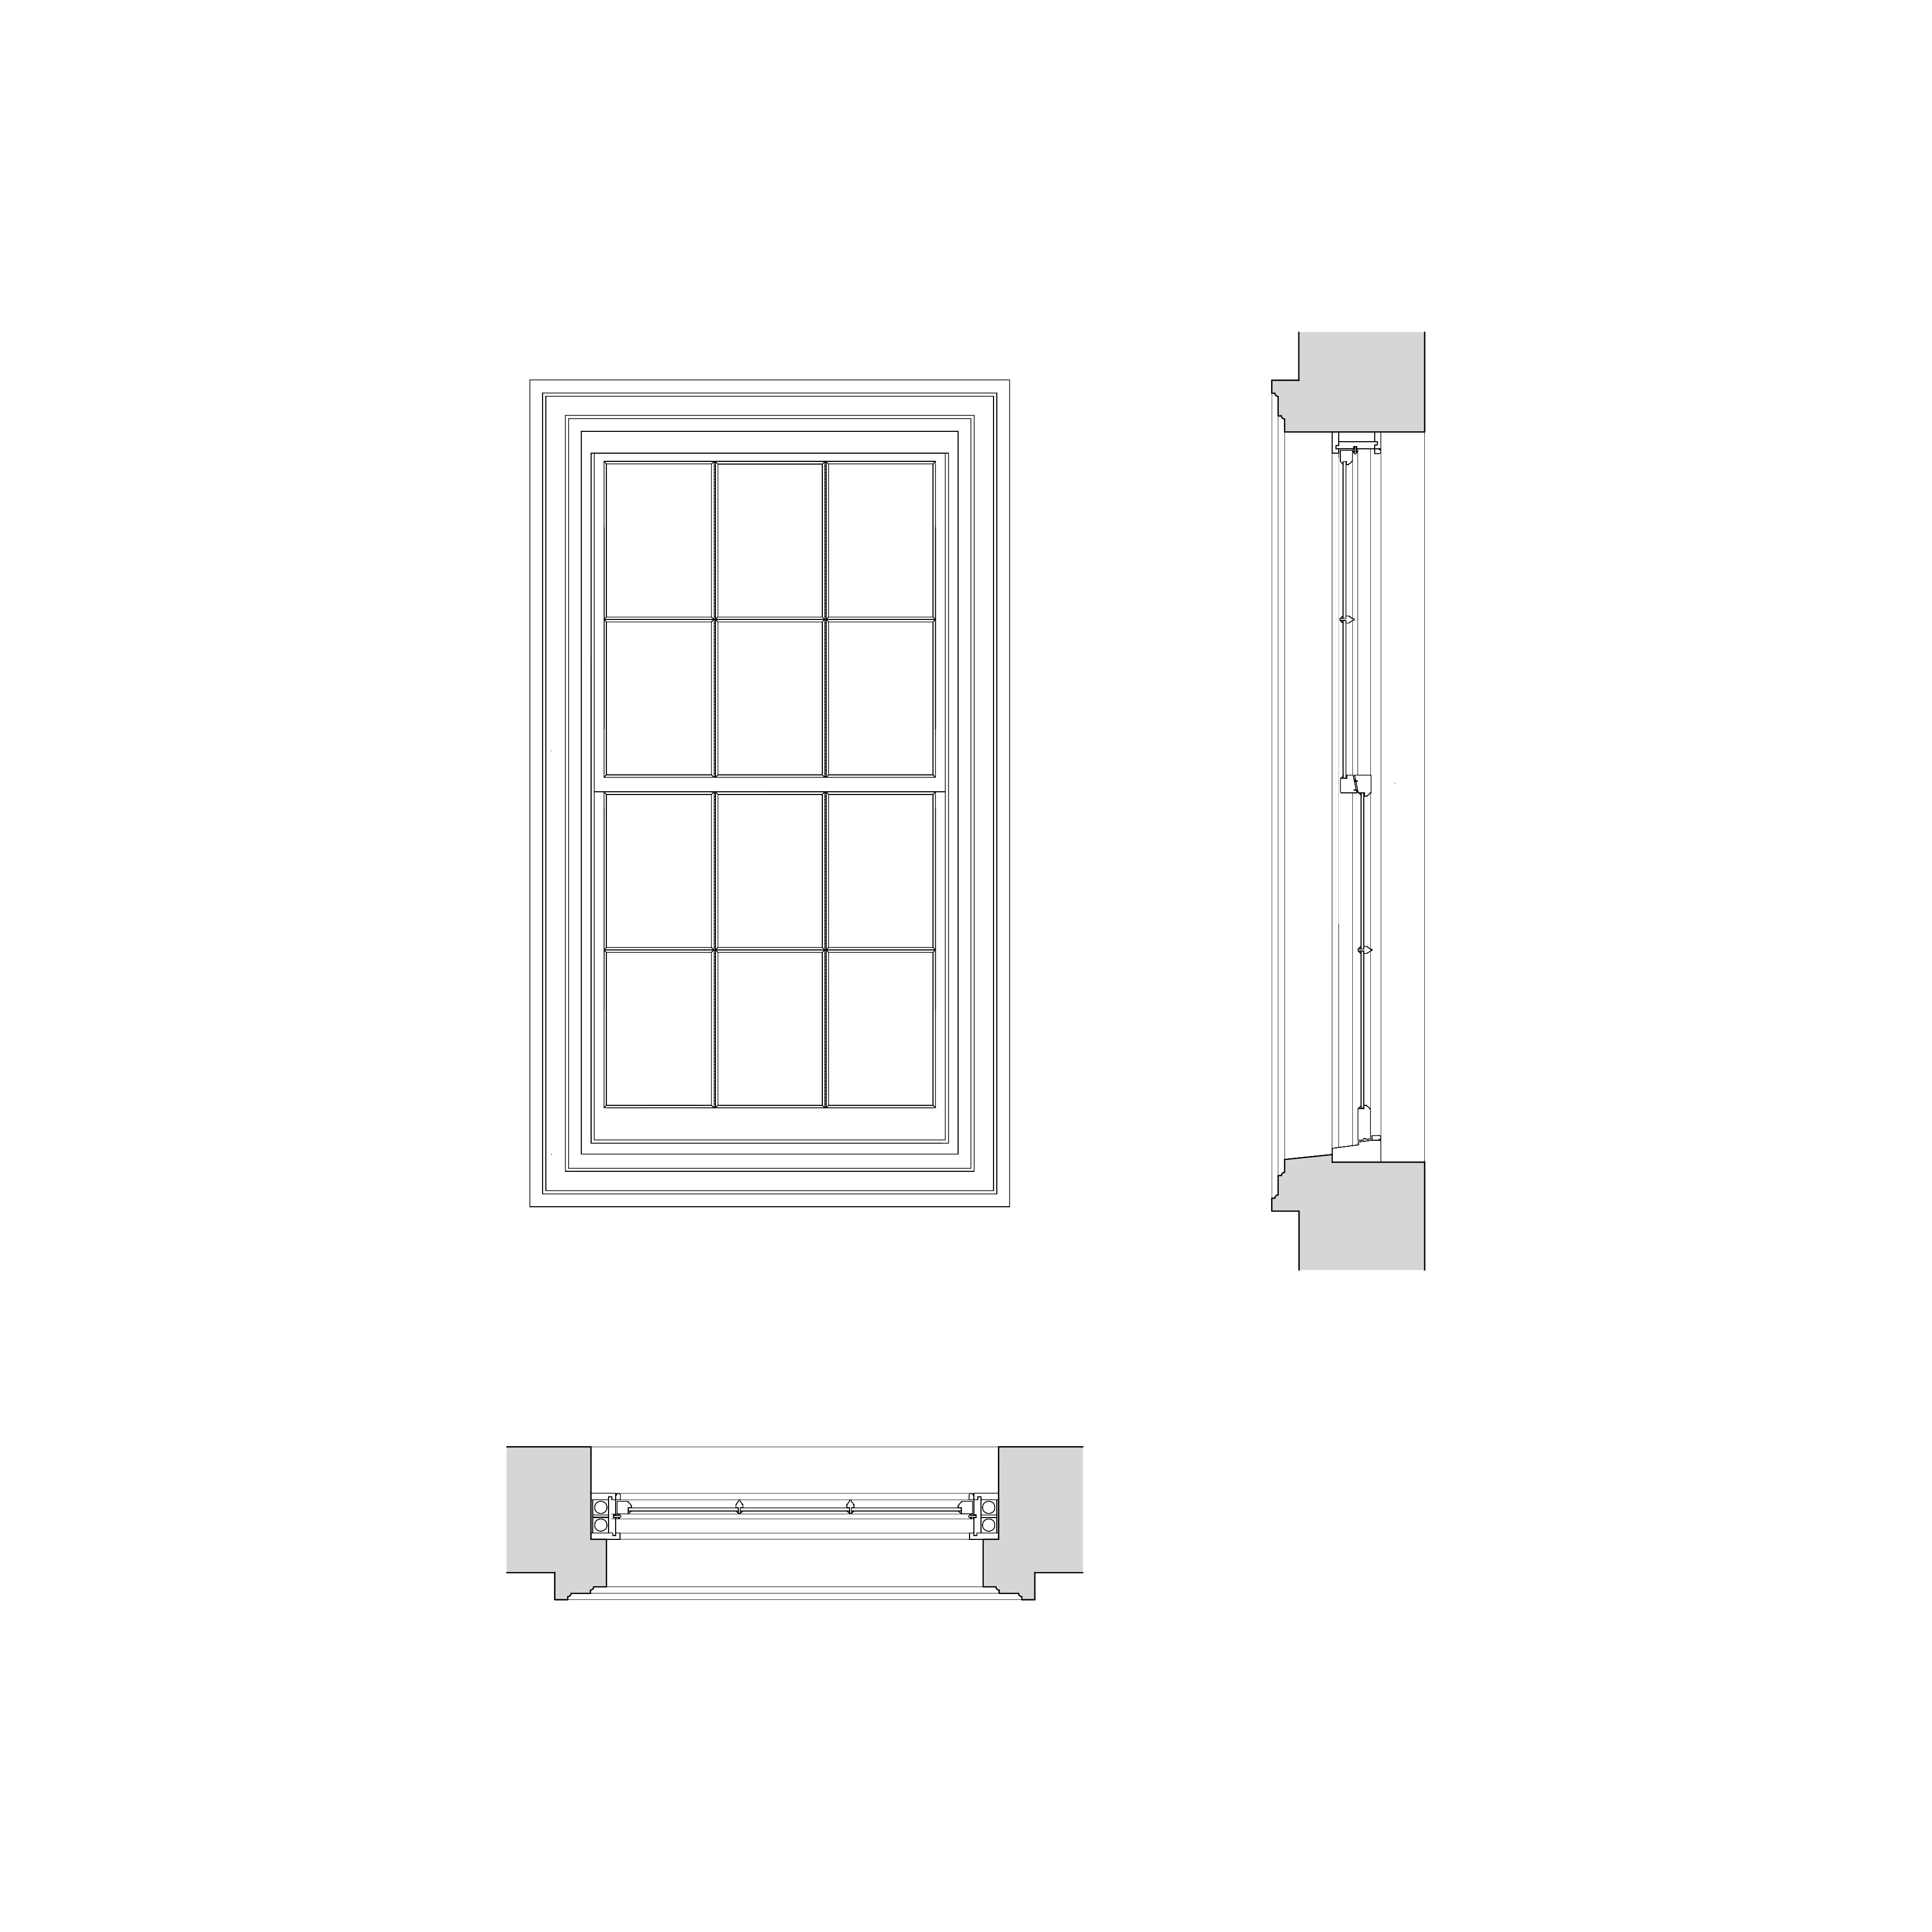 HPG-window-drawing-for-website